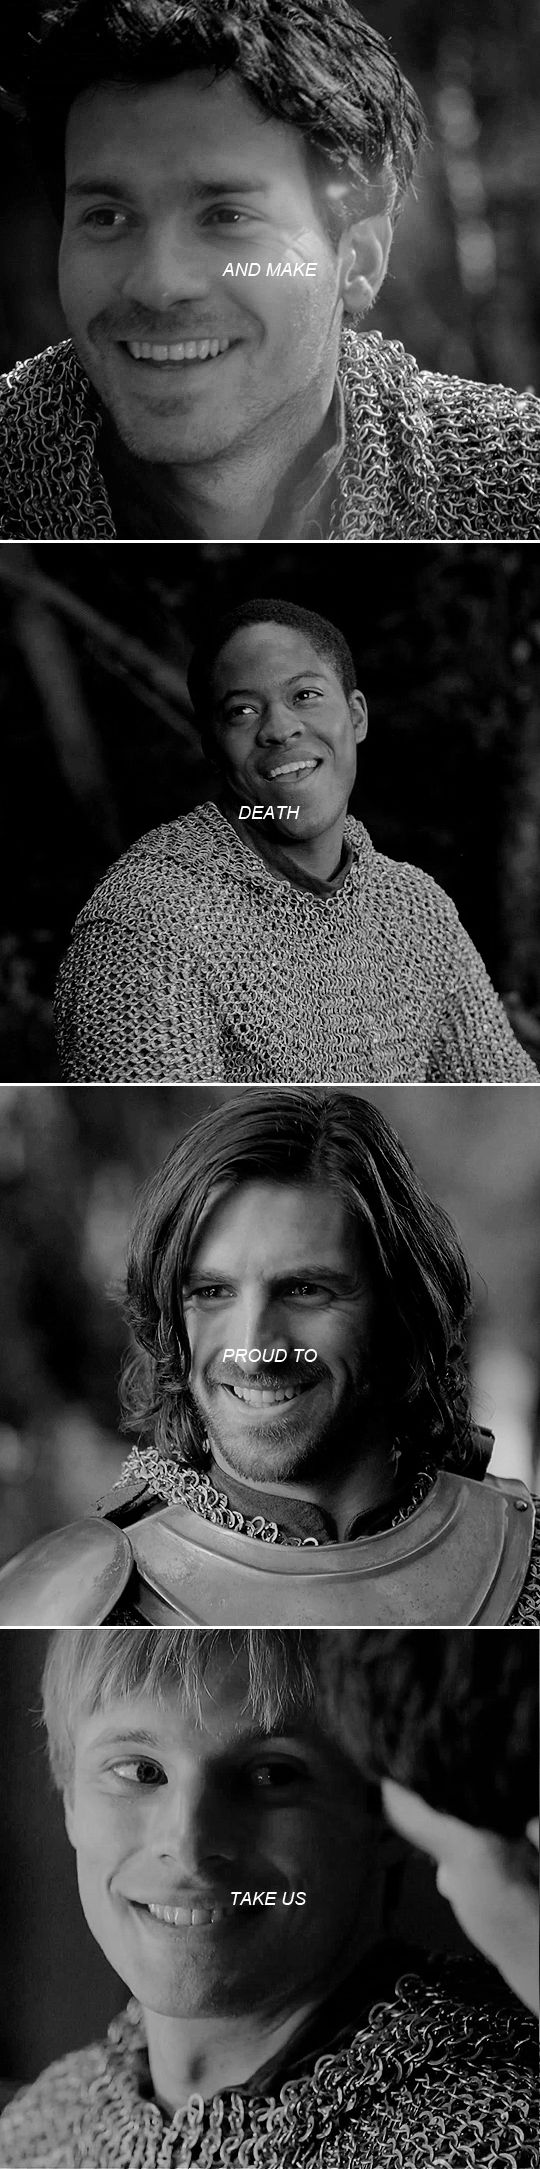 The Knights of the Round Table + Shakespeare  #merlin